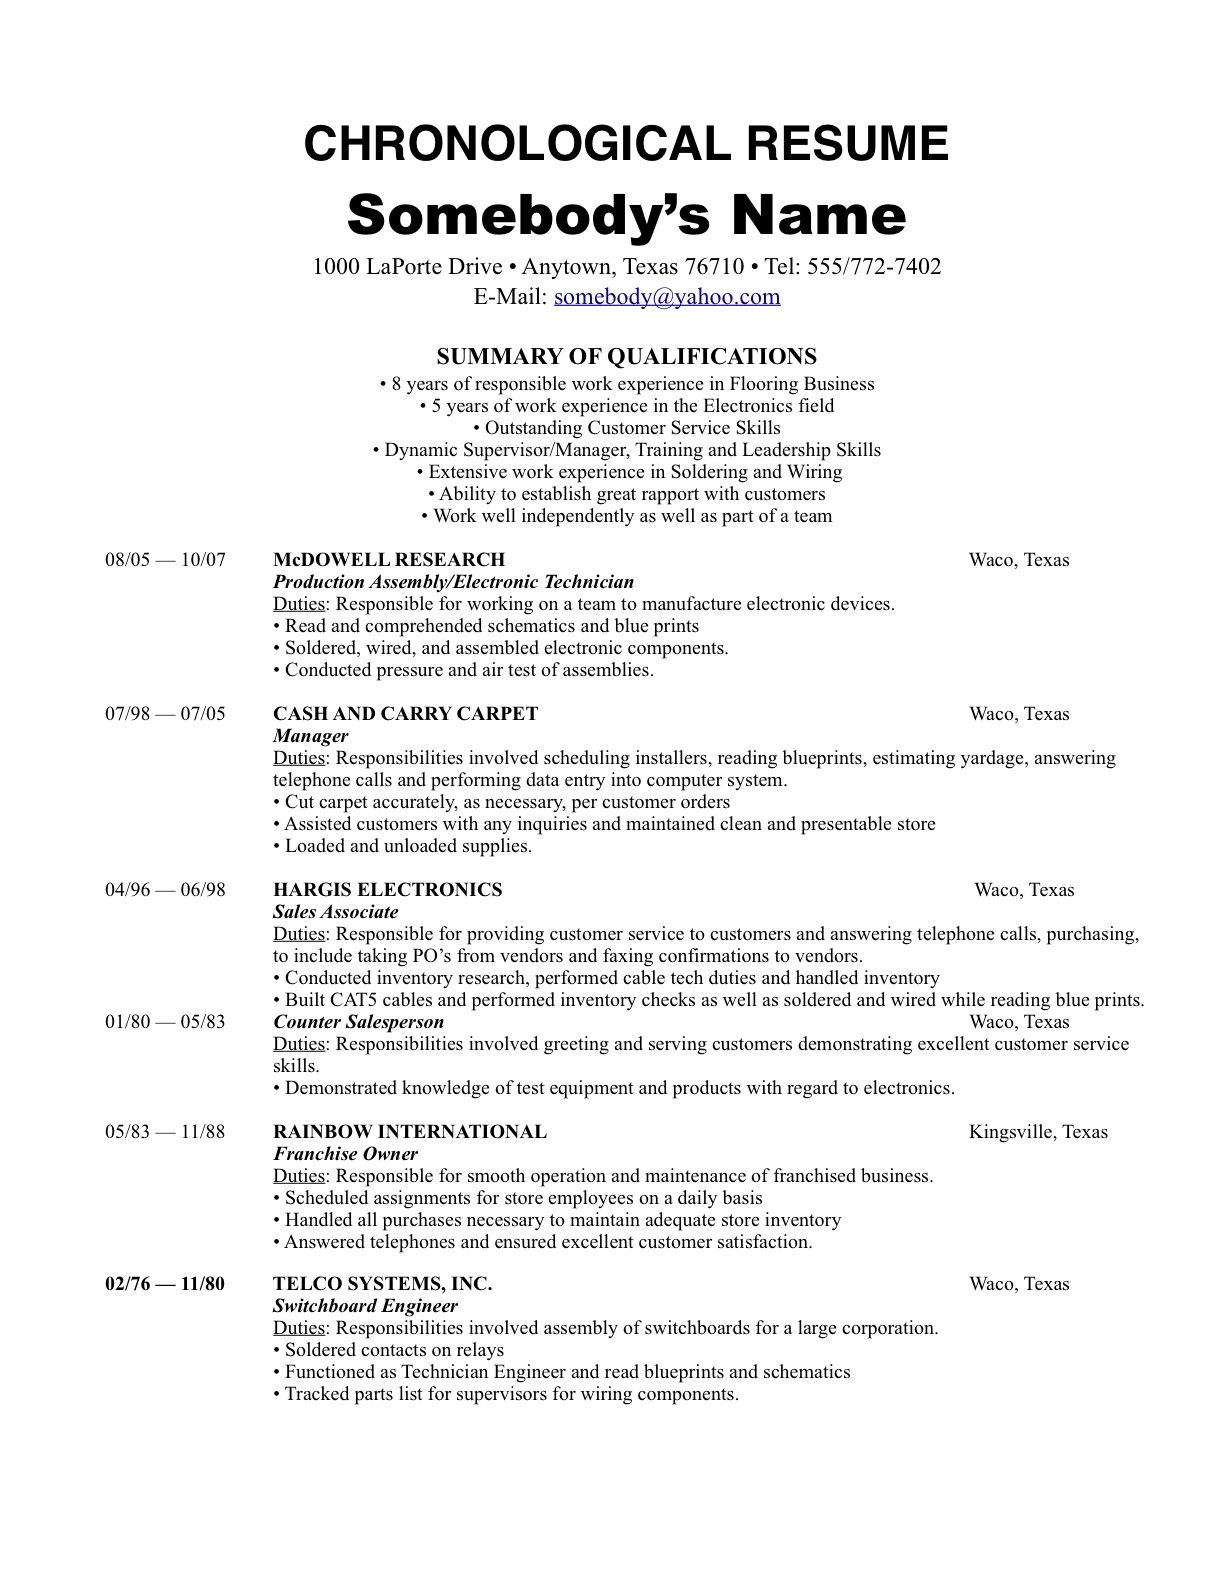 Exceptional Chronological Order Resume Example Dc0364f86 The Most Reverse Chronological  Resume Example And Sample Chronological Resume